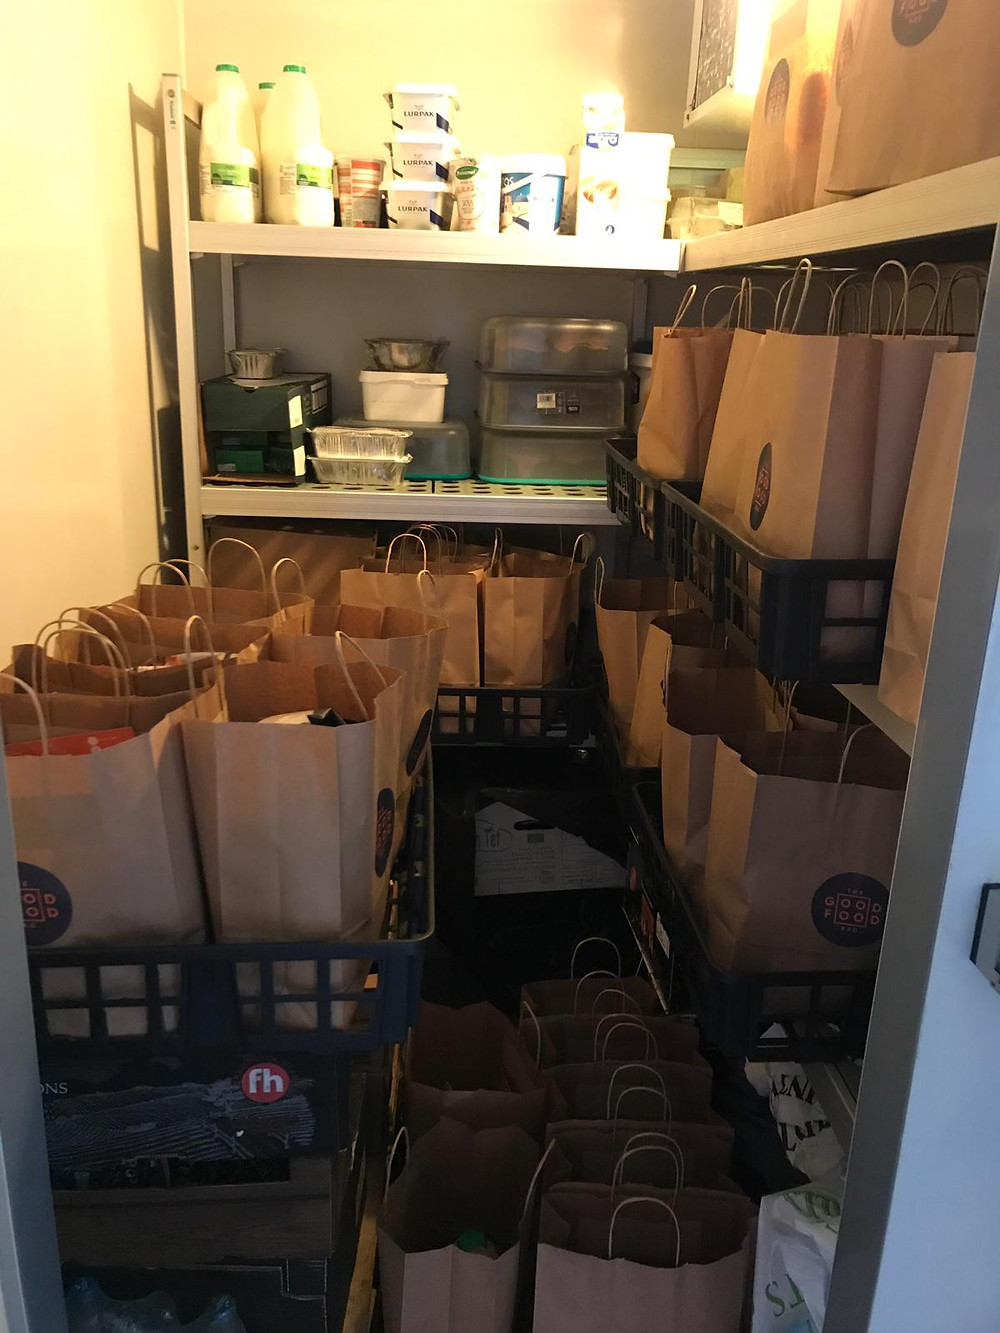 Picture of The Good Food Bag meal kits in a fridge